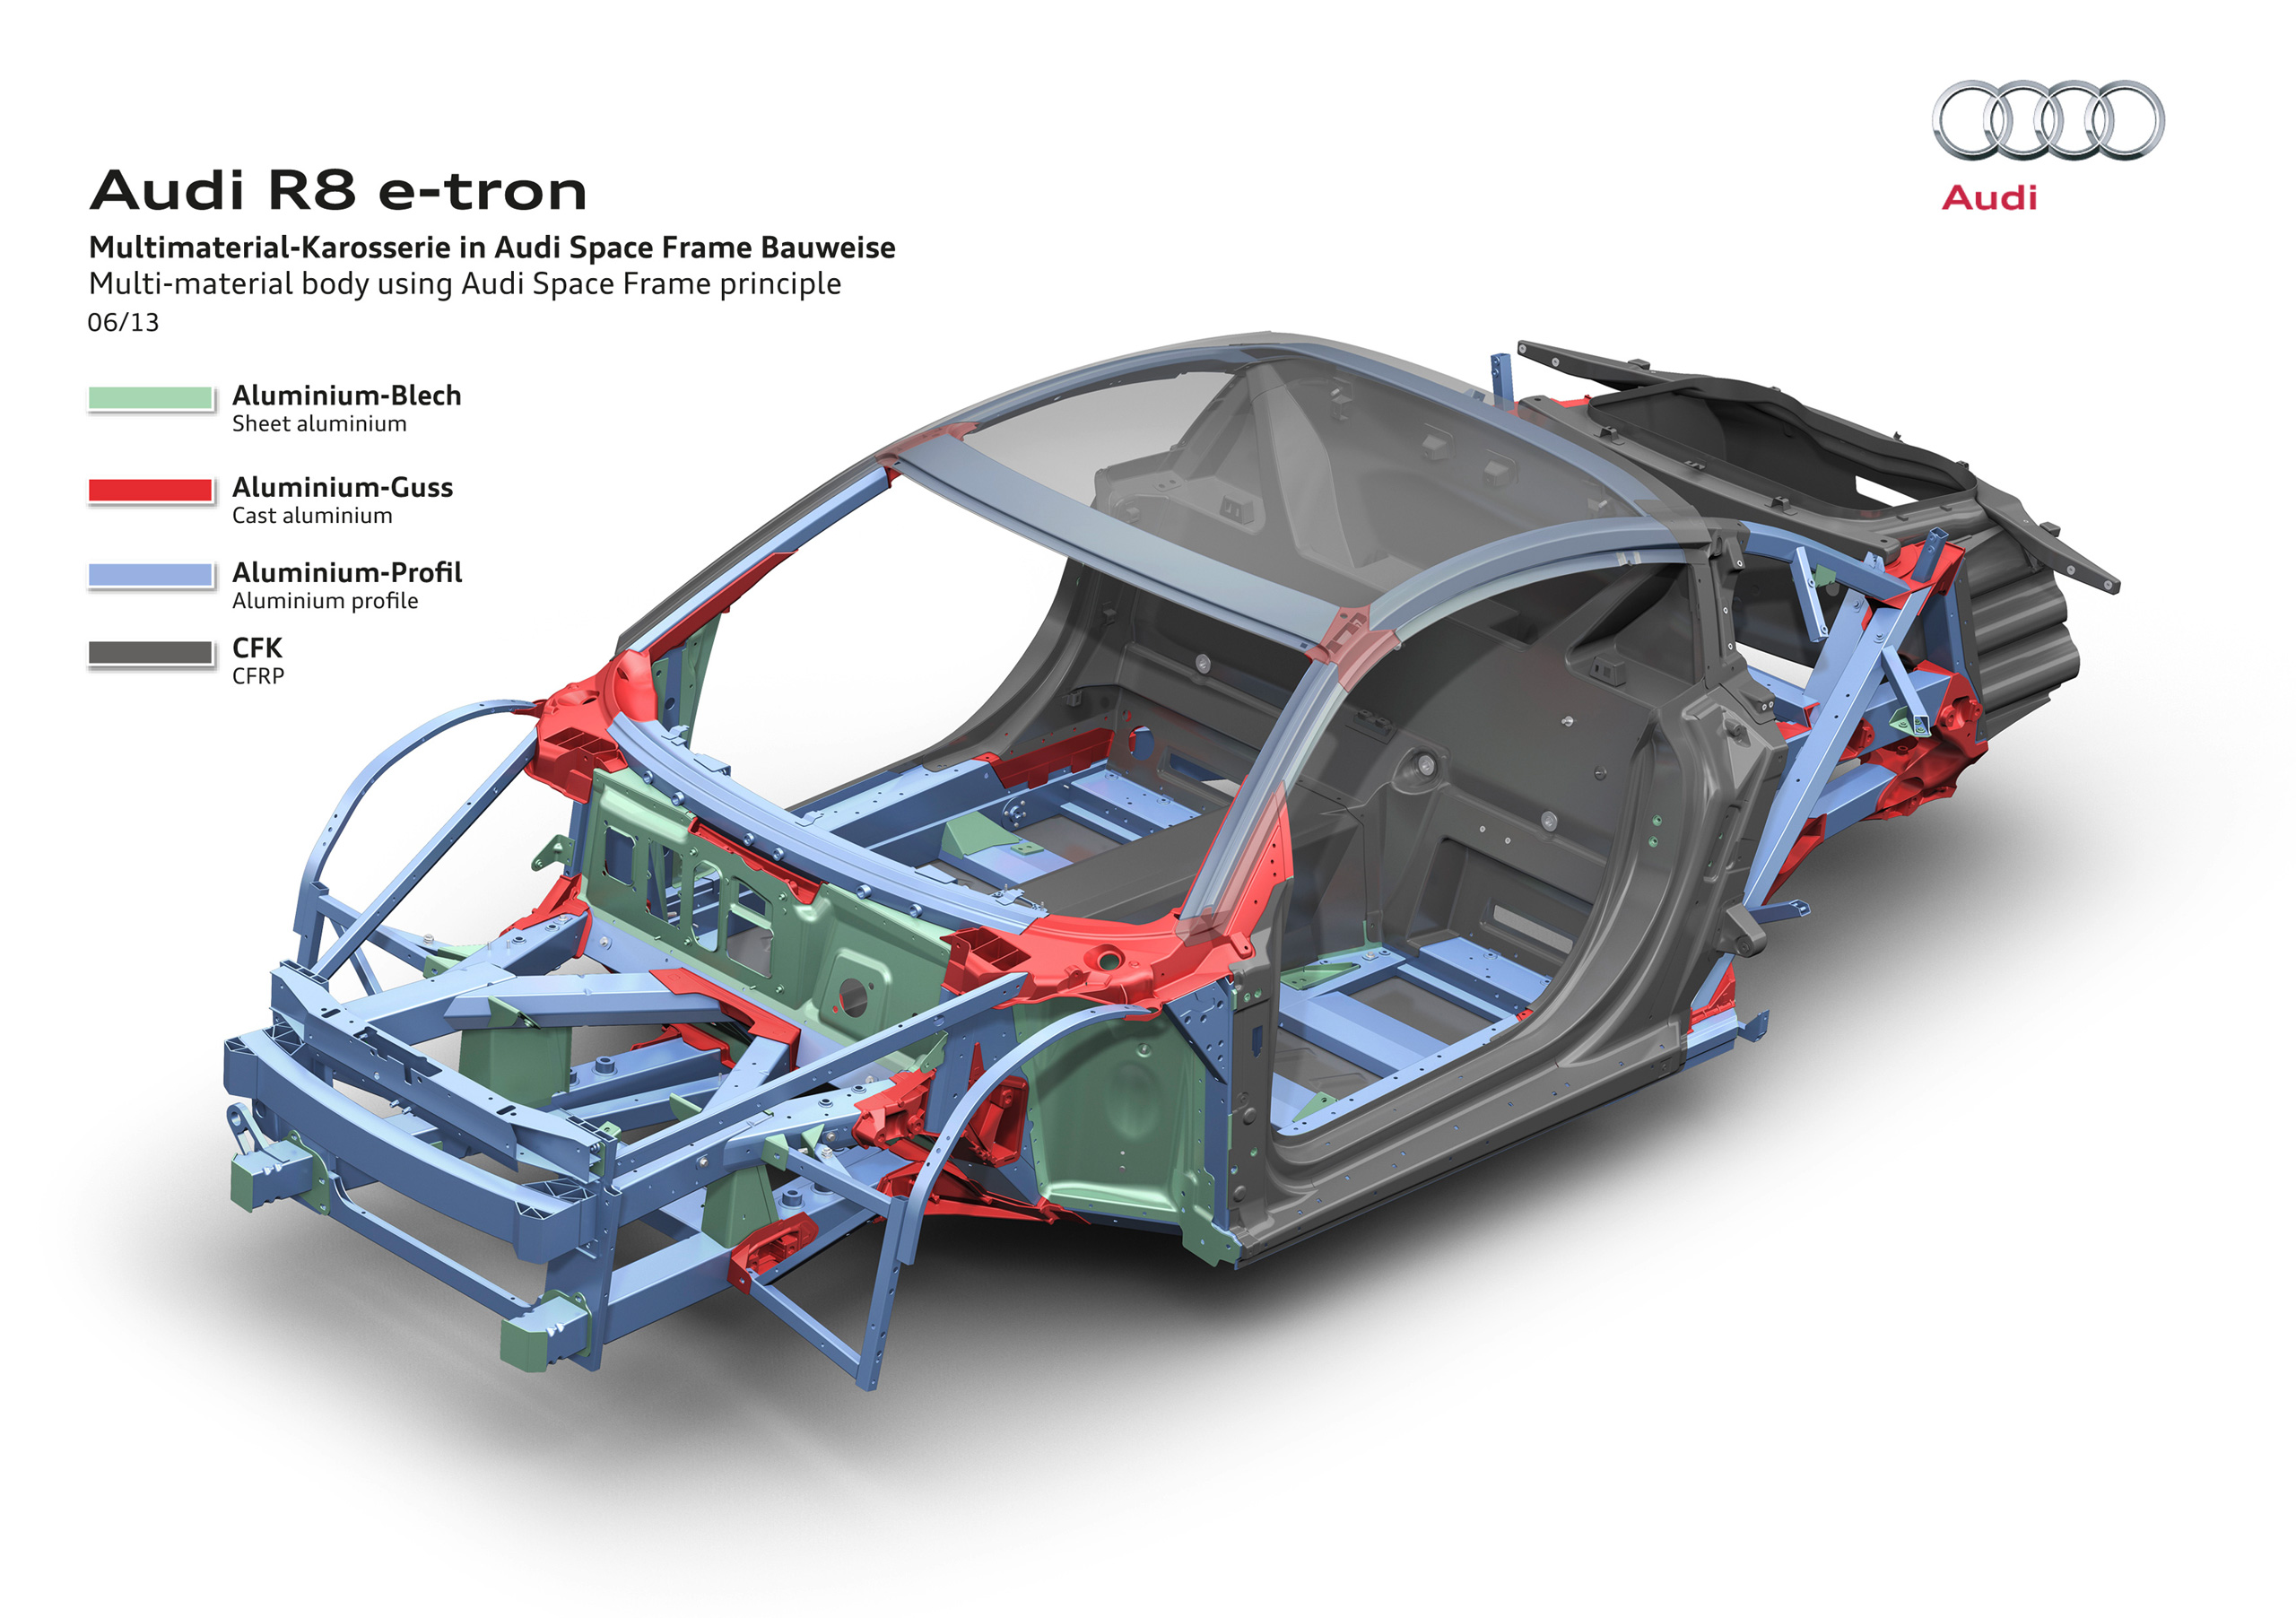 All Electric Audi R8 E Tron Not Production Feasible Yet